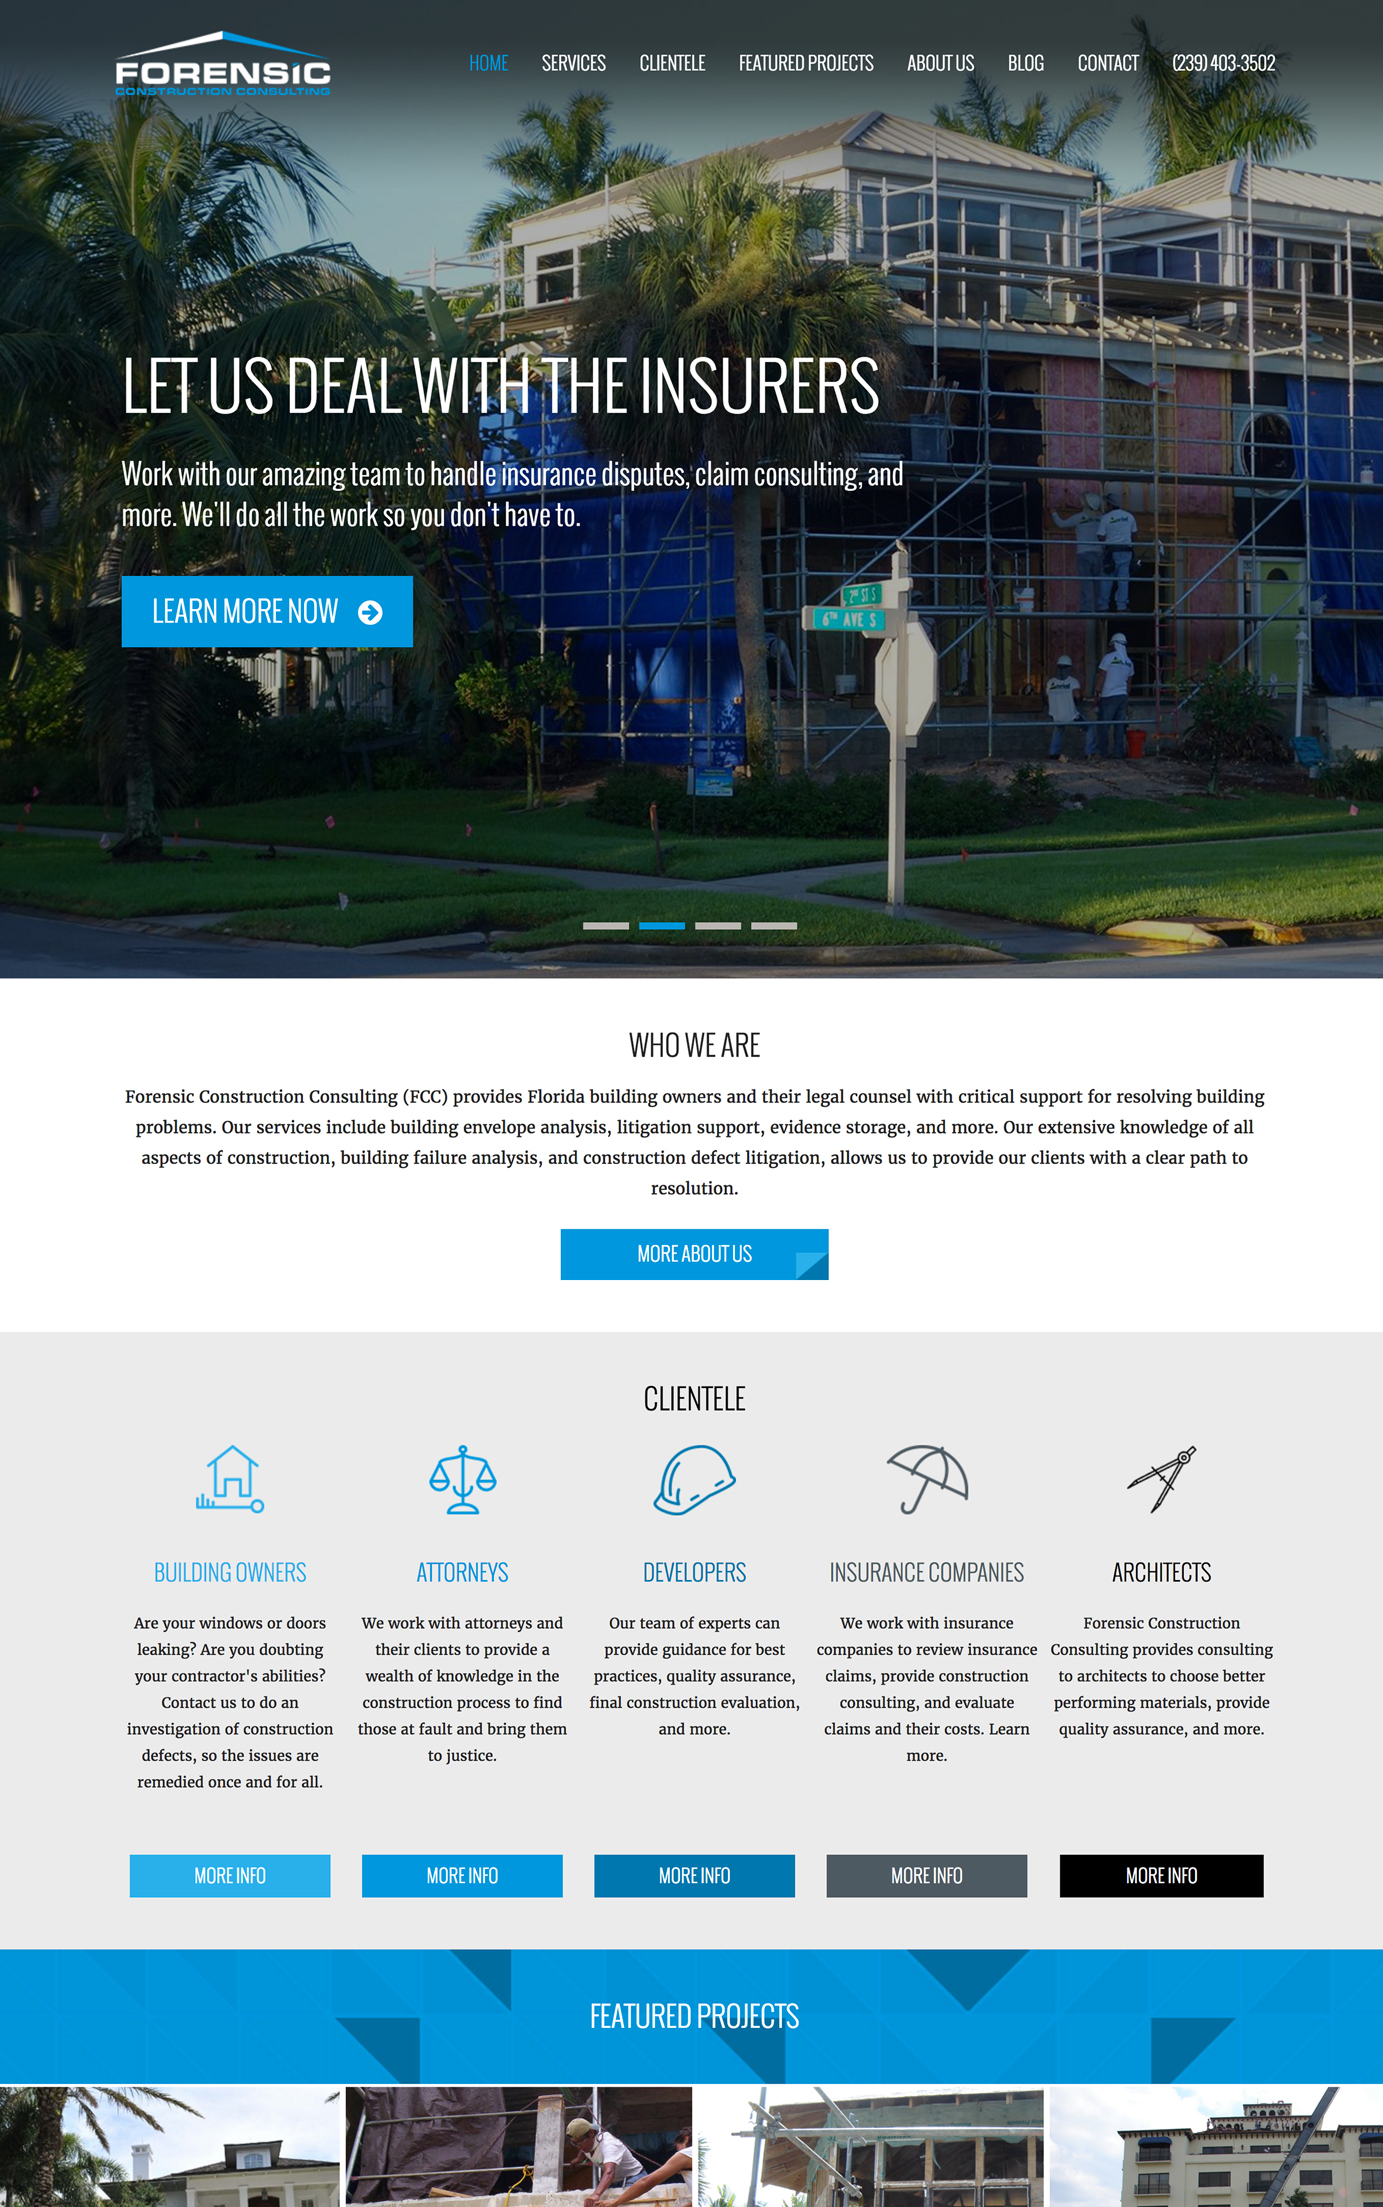 Forensic Construction - Marketing and web design